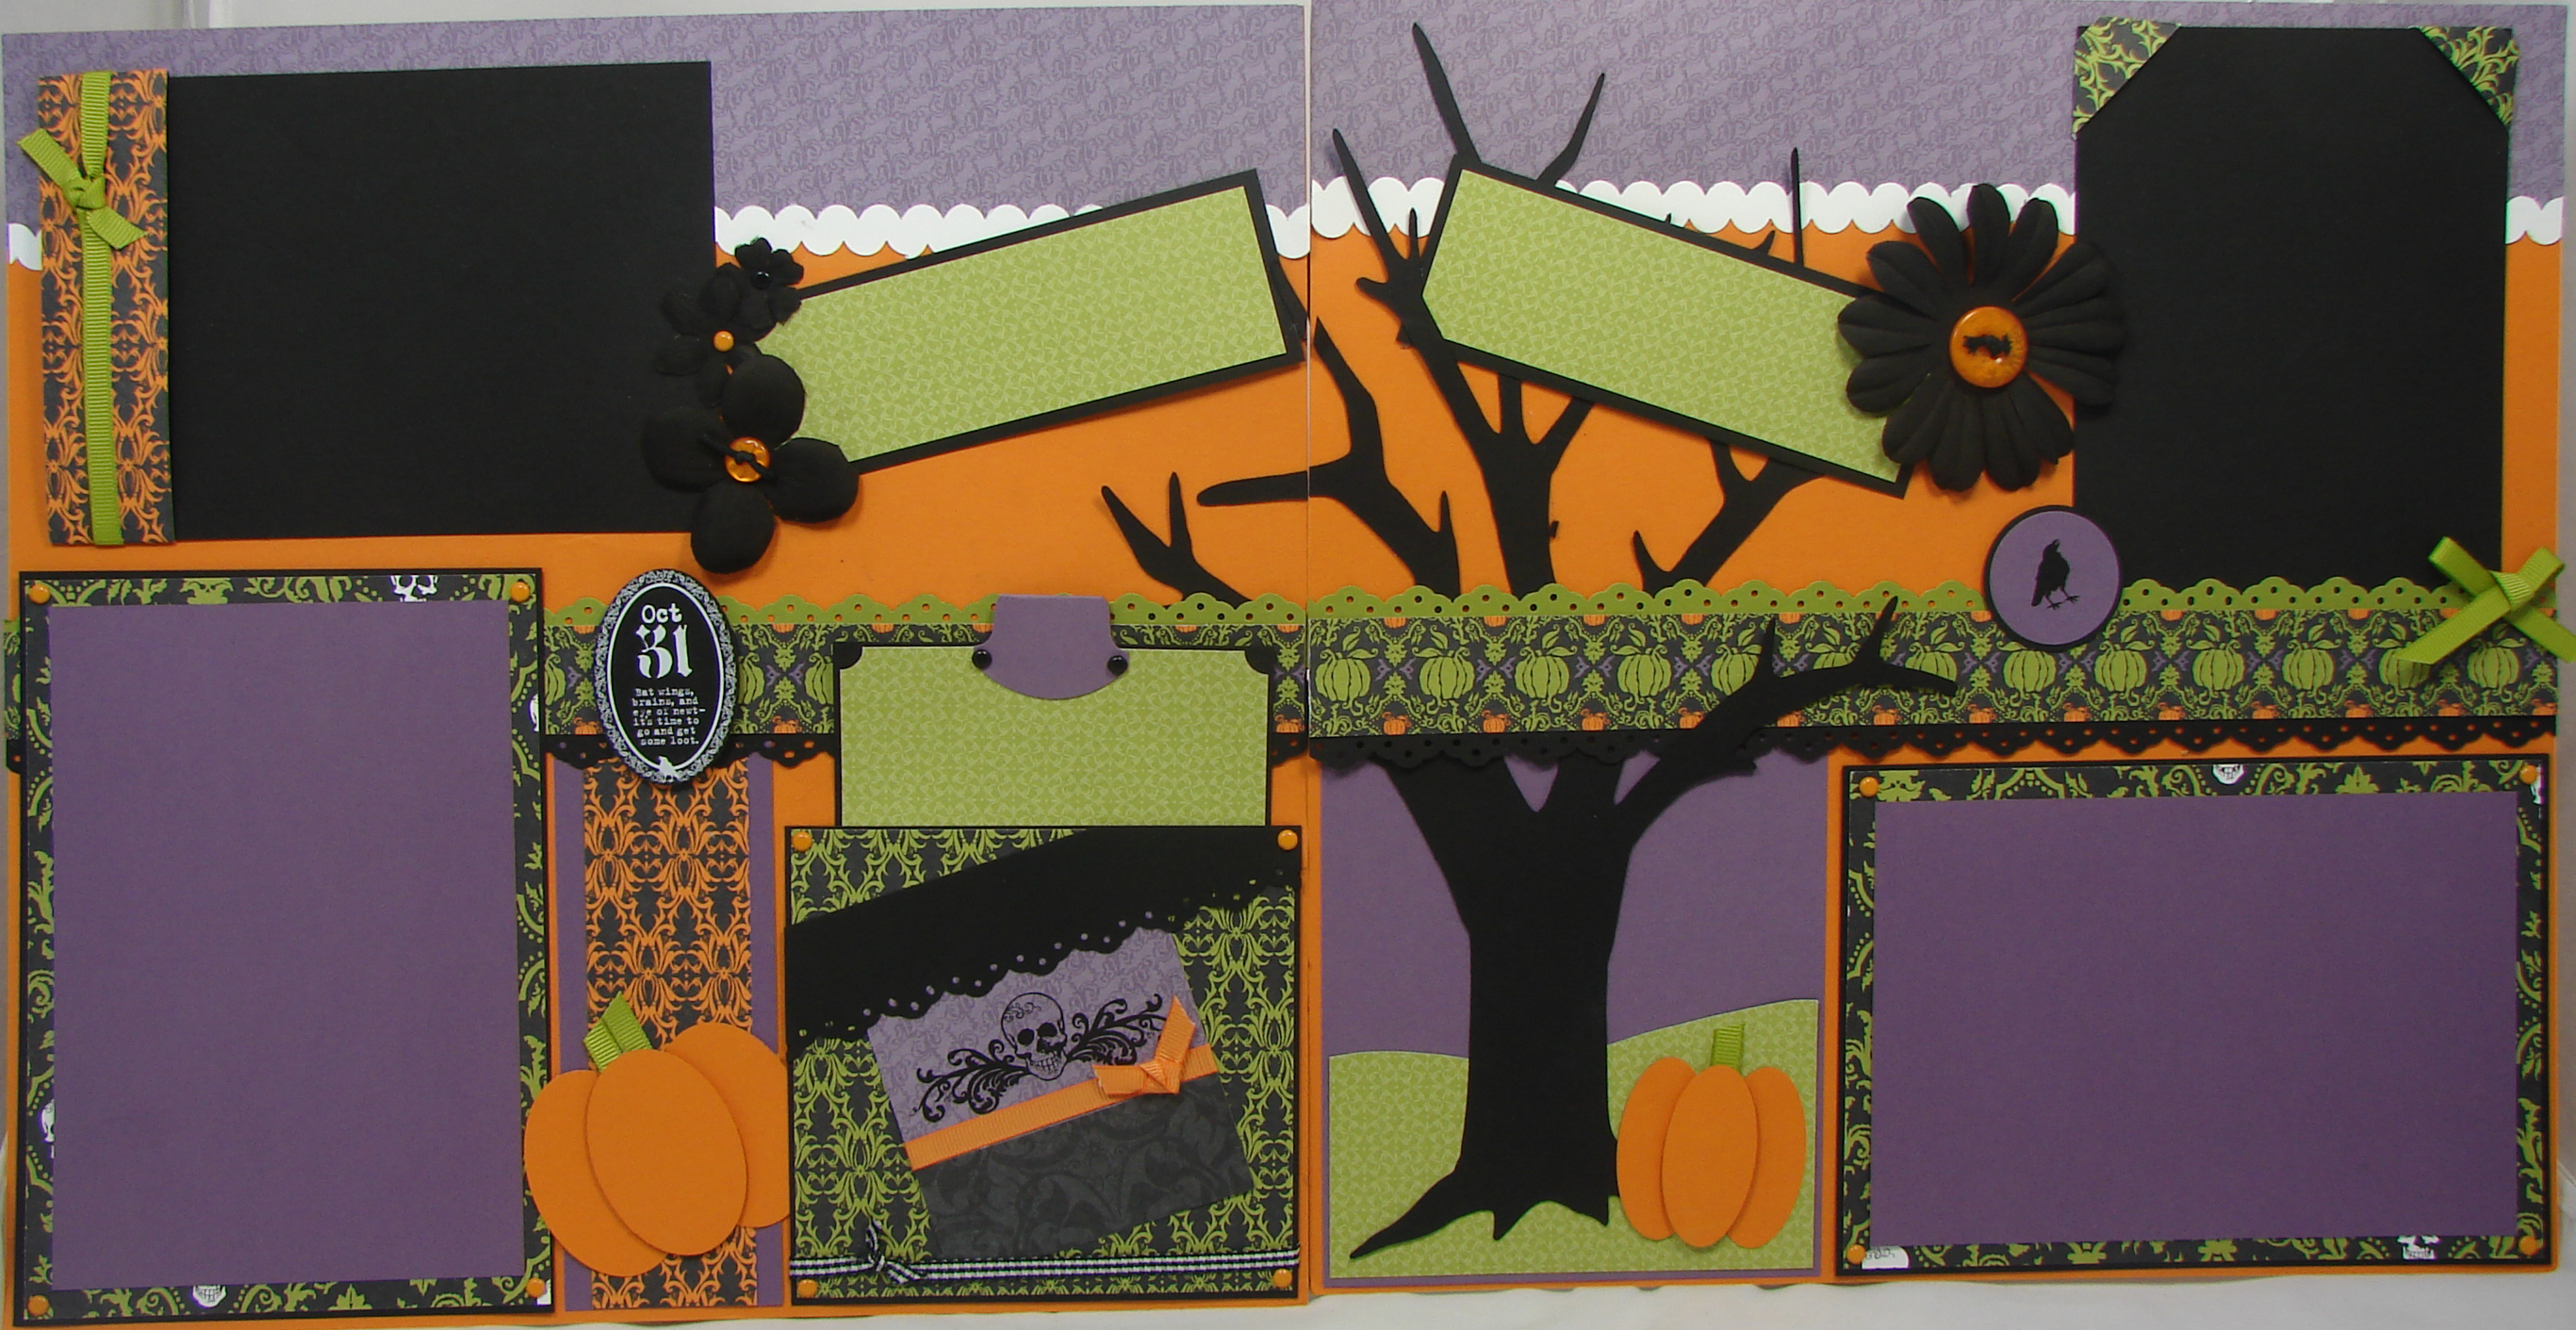 How to refill scrapbook pages - Cast A Spell With This Spooky Halloween Scrapbook Layout